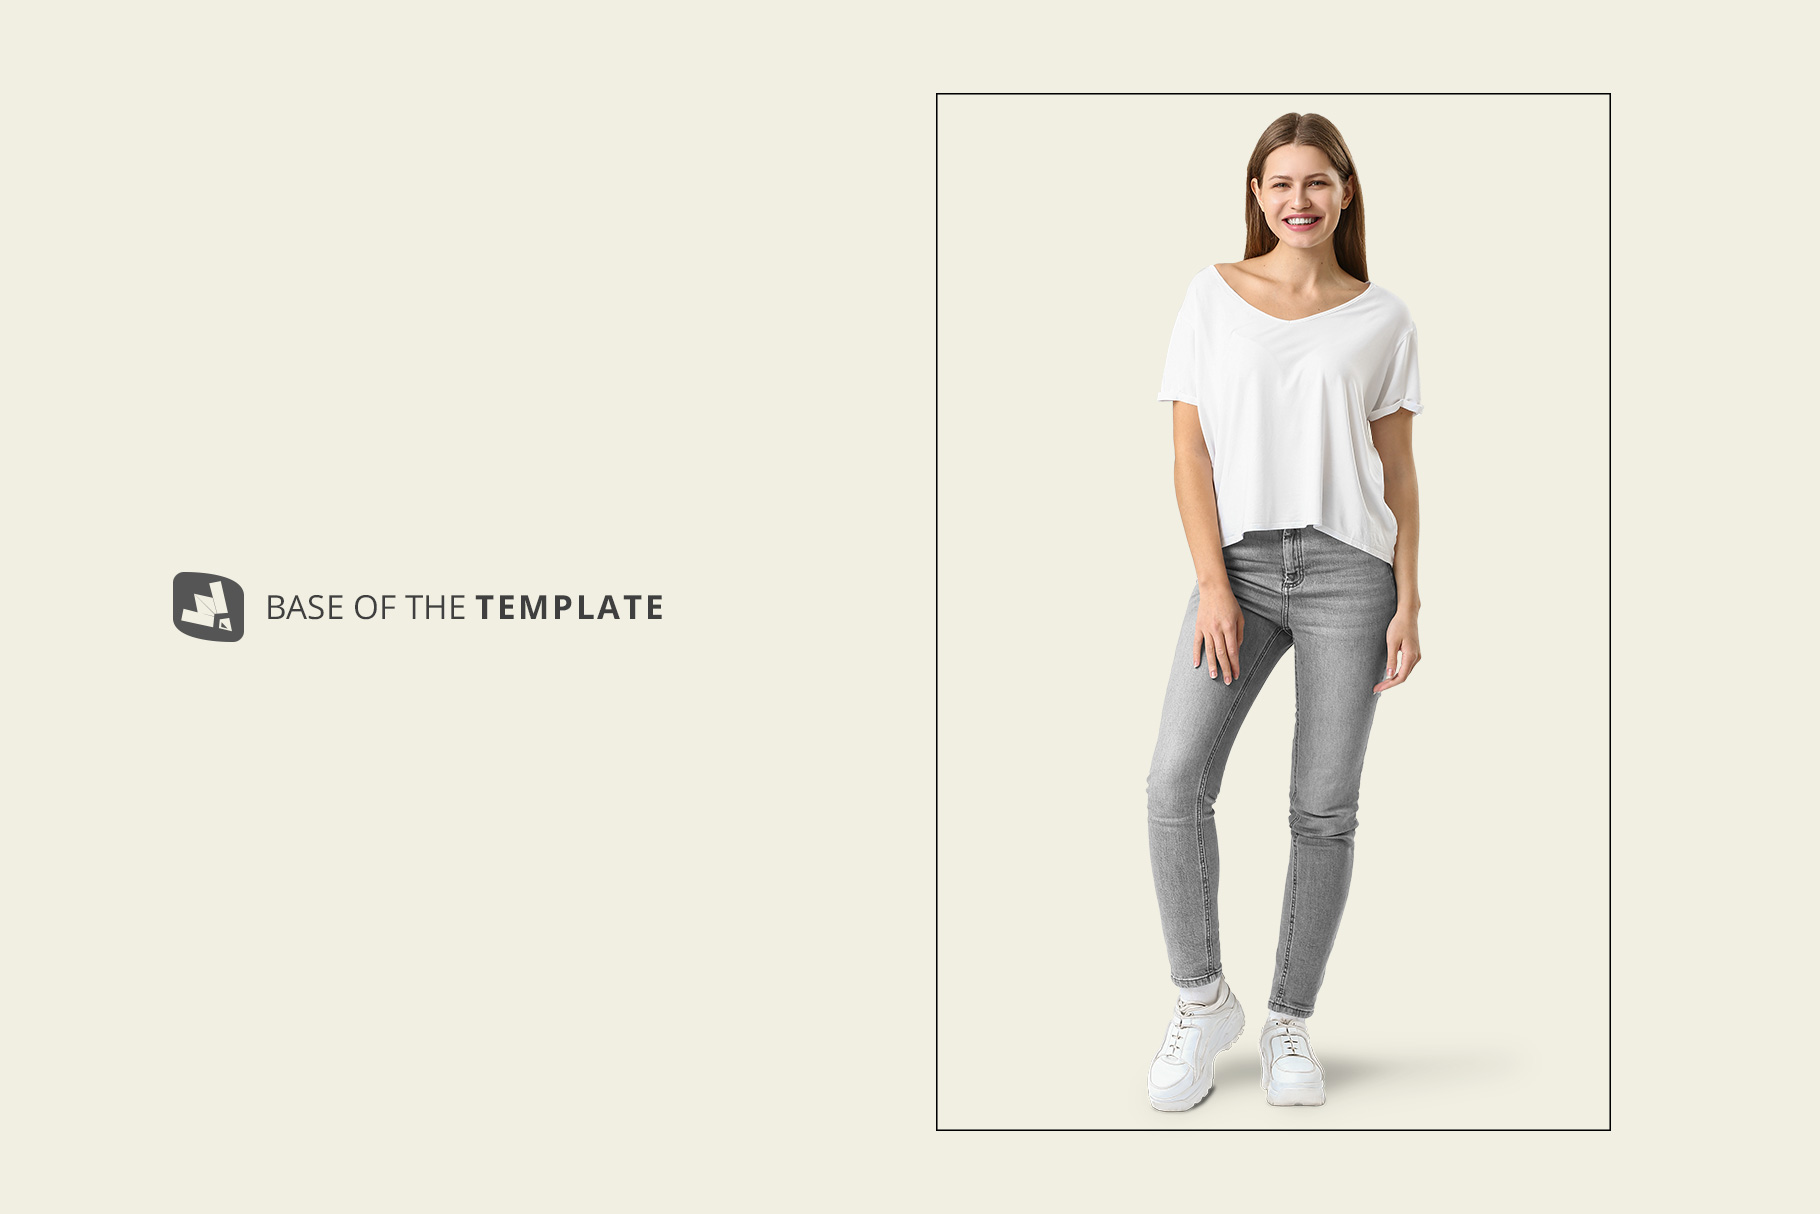 base image of the female everyday outfit mockup